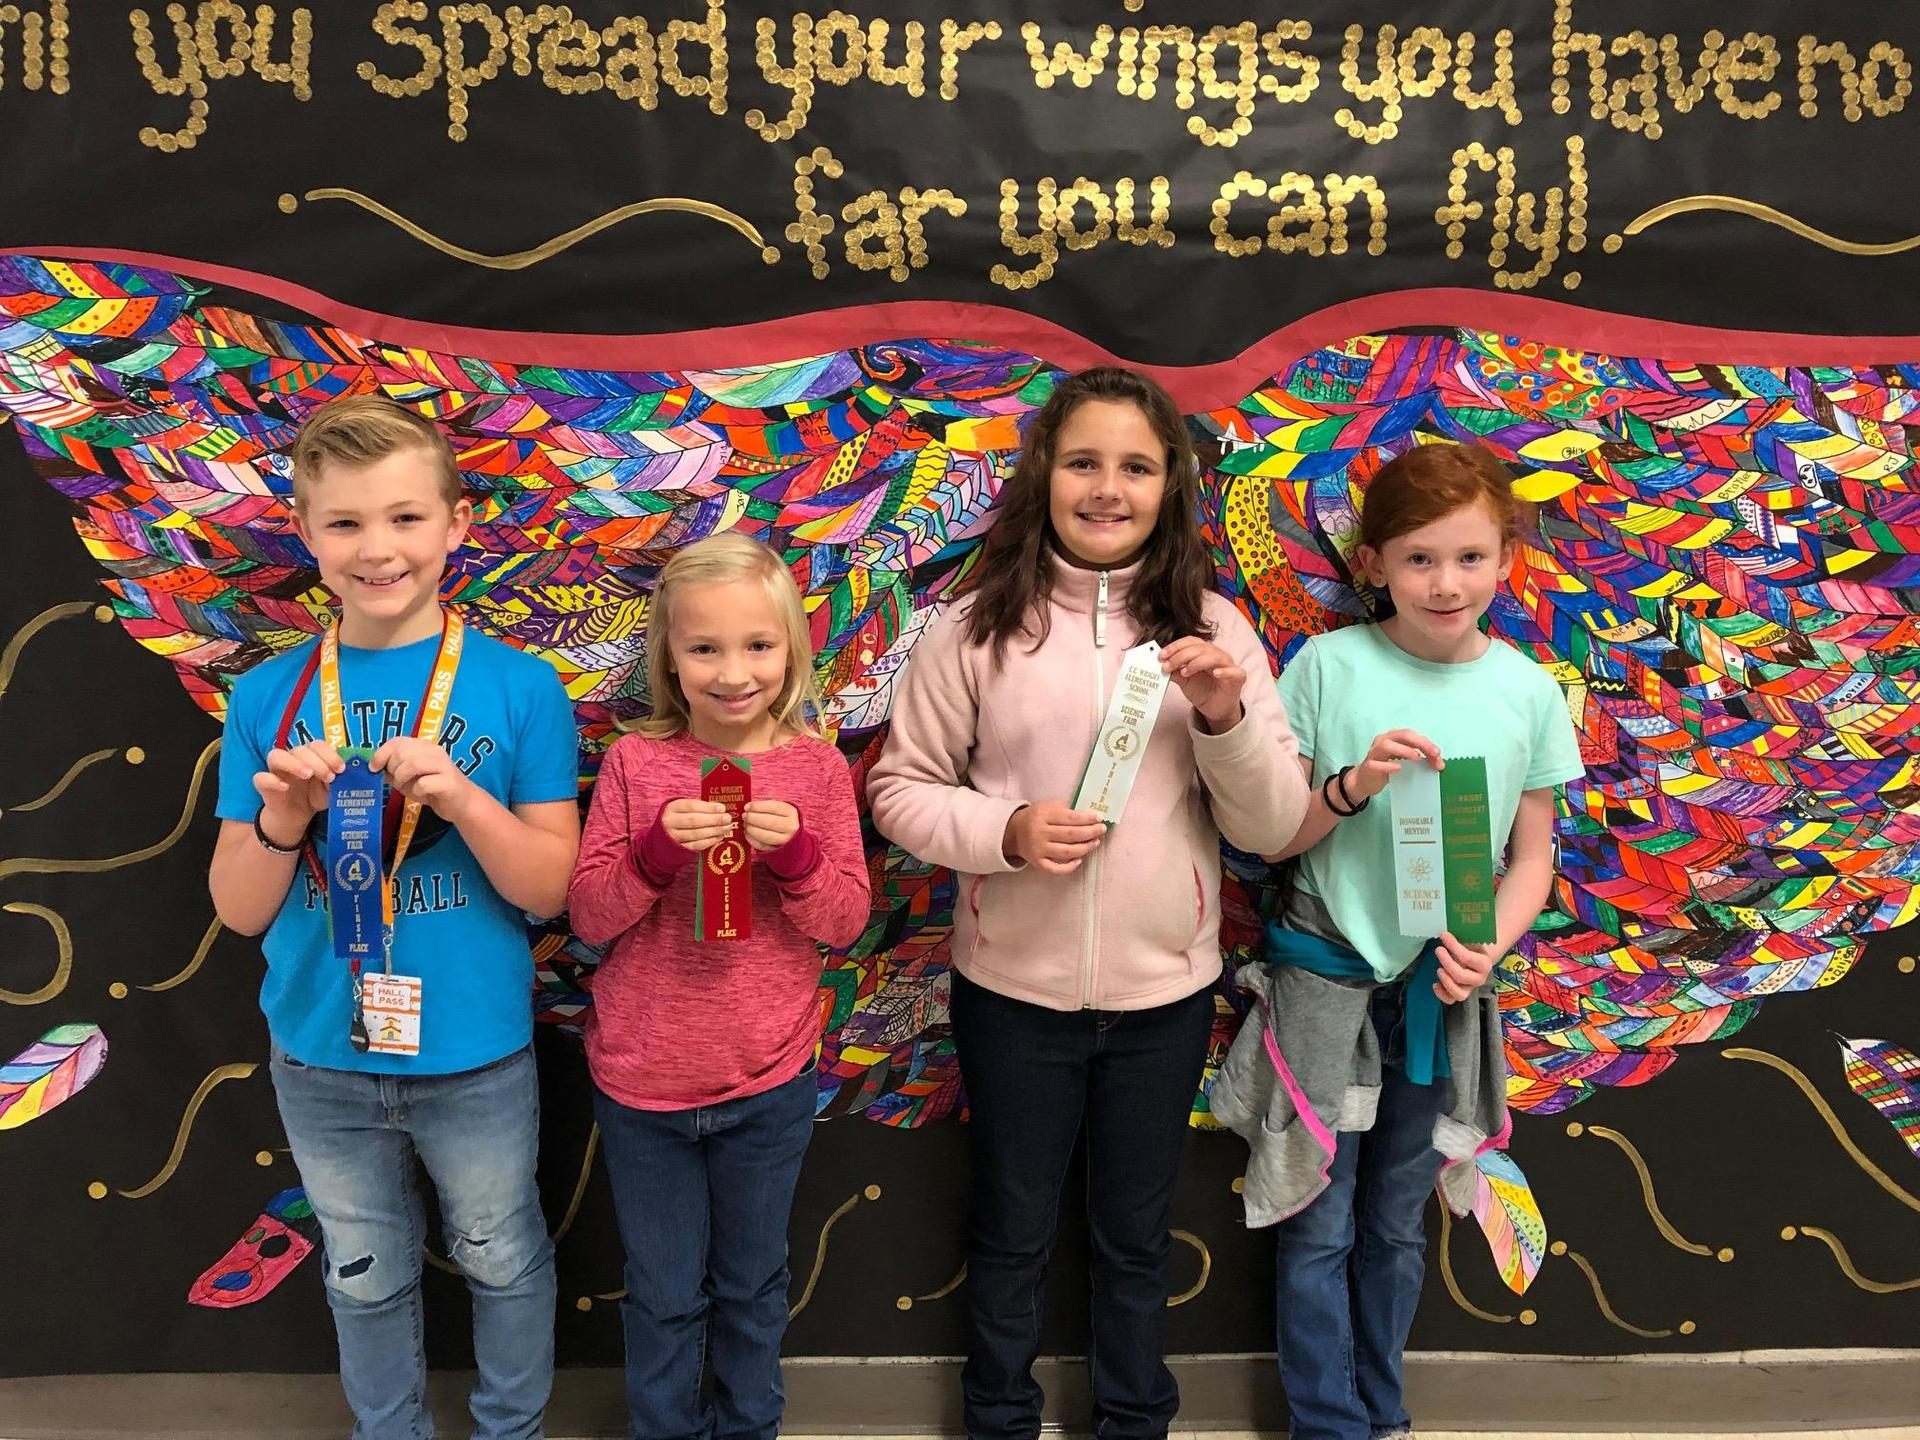 Four science winners hold up their ribbons.